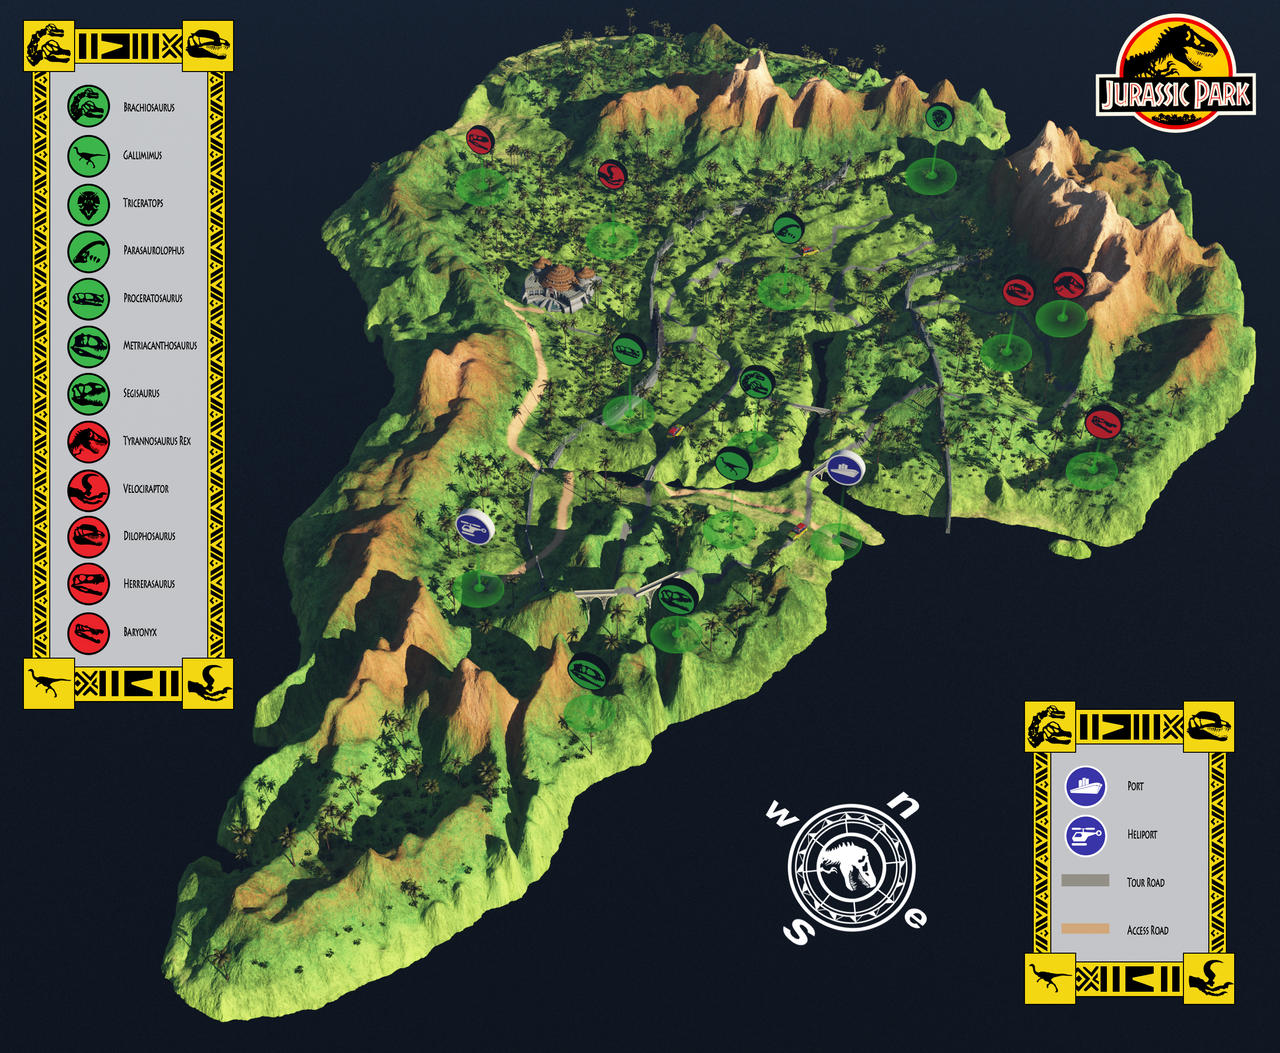 Jurassic park map park map jurassic park wiki fandom powered by jurassic park map by chakotay on deviantart gumiabroncs Choice Image